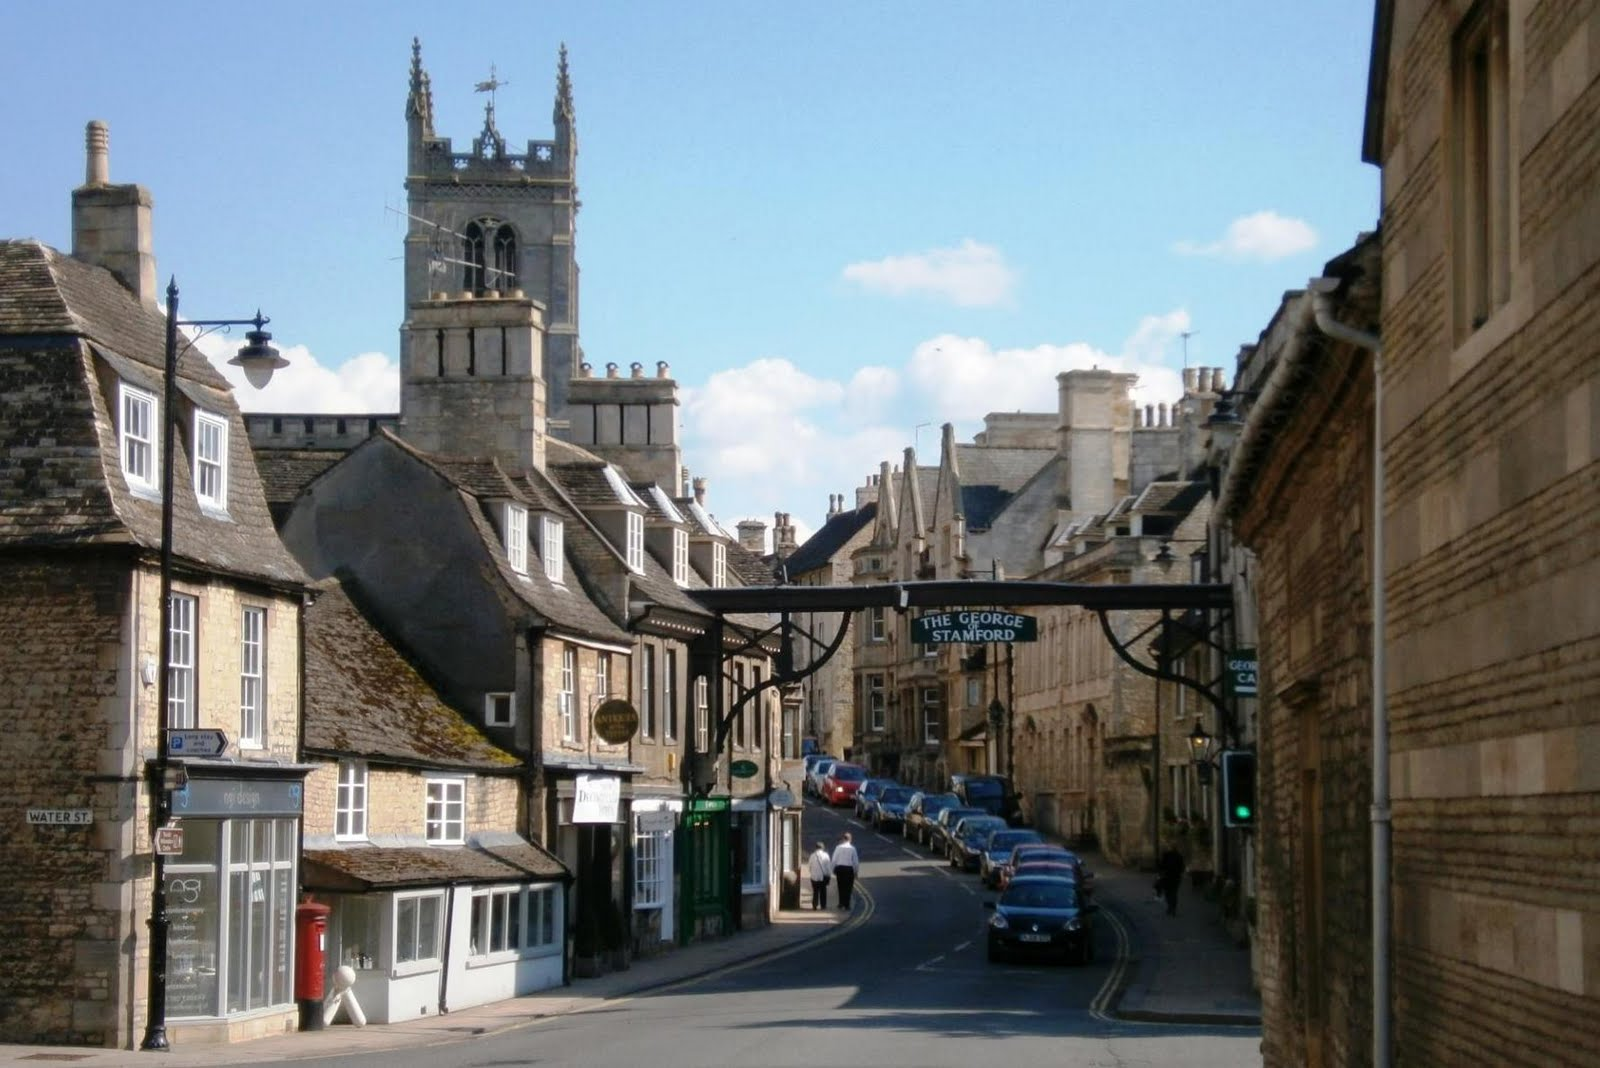 Liberal England Oxford Cambridge And Stamford